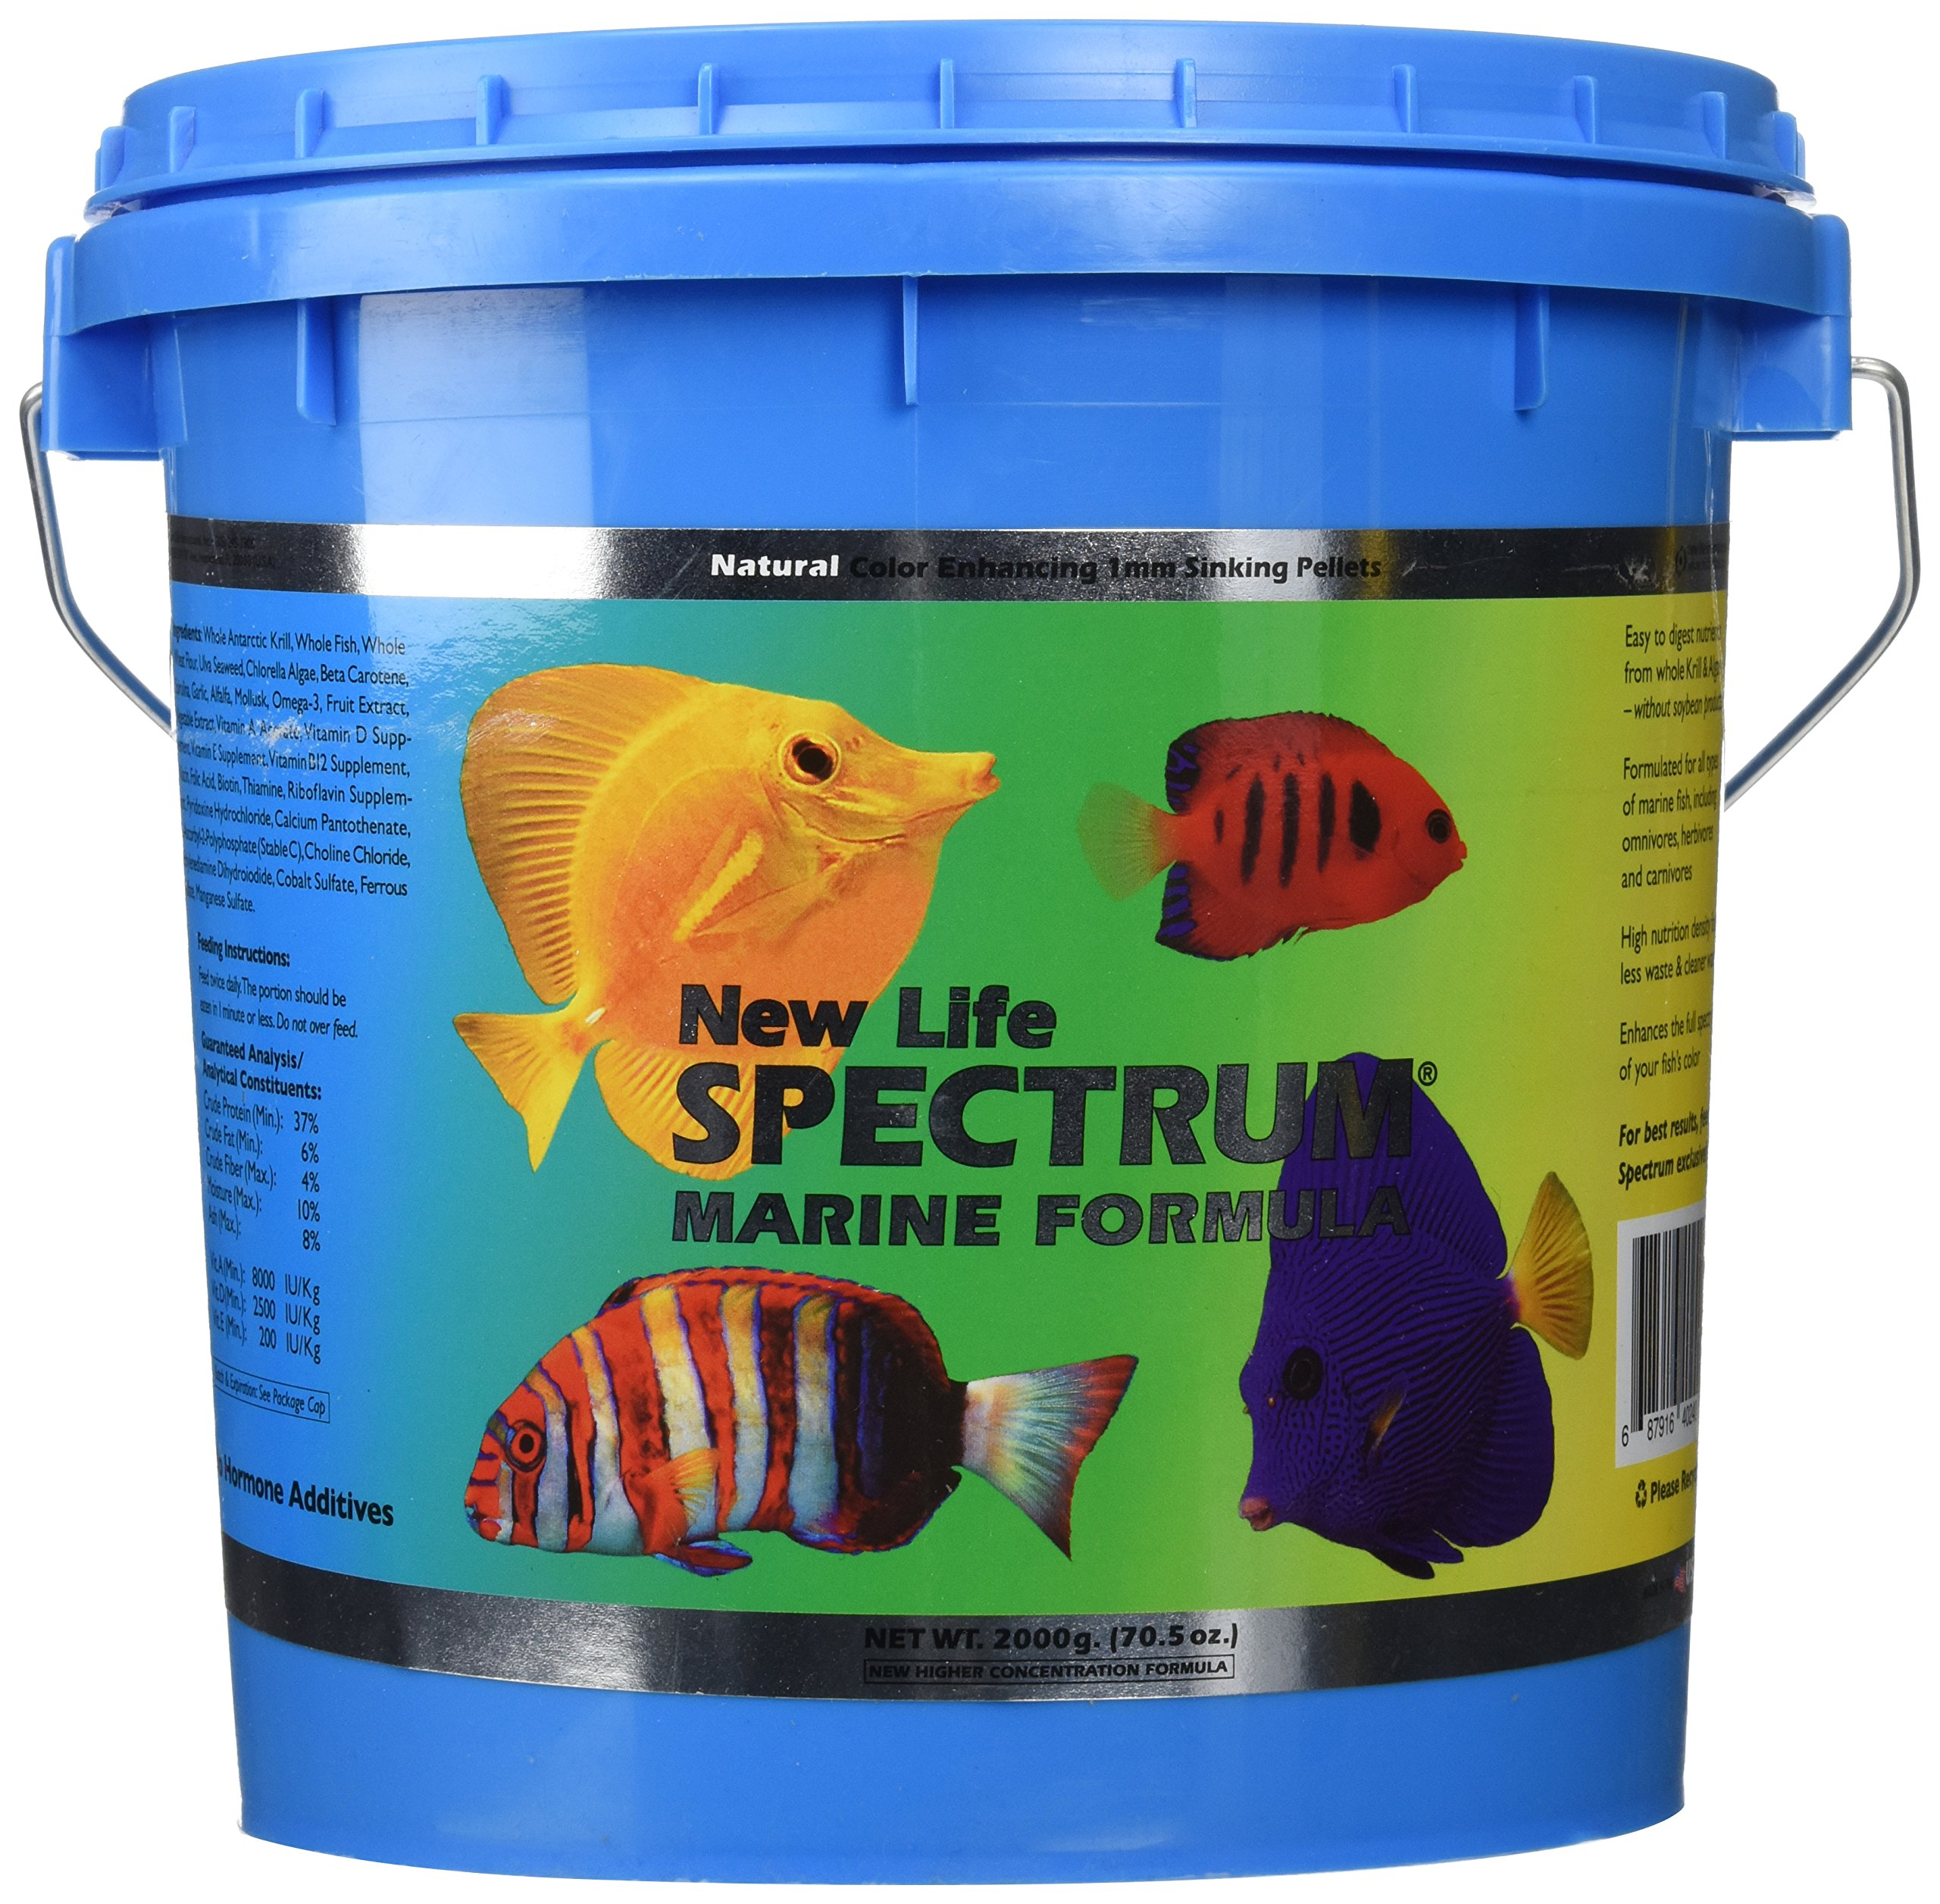 New Life Spectrum Marine Fish Formula 1mm Sinking Saltwater - 2000g by New Life Spectrum